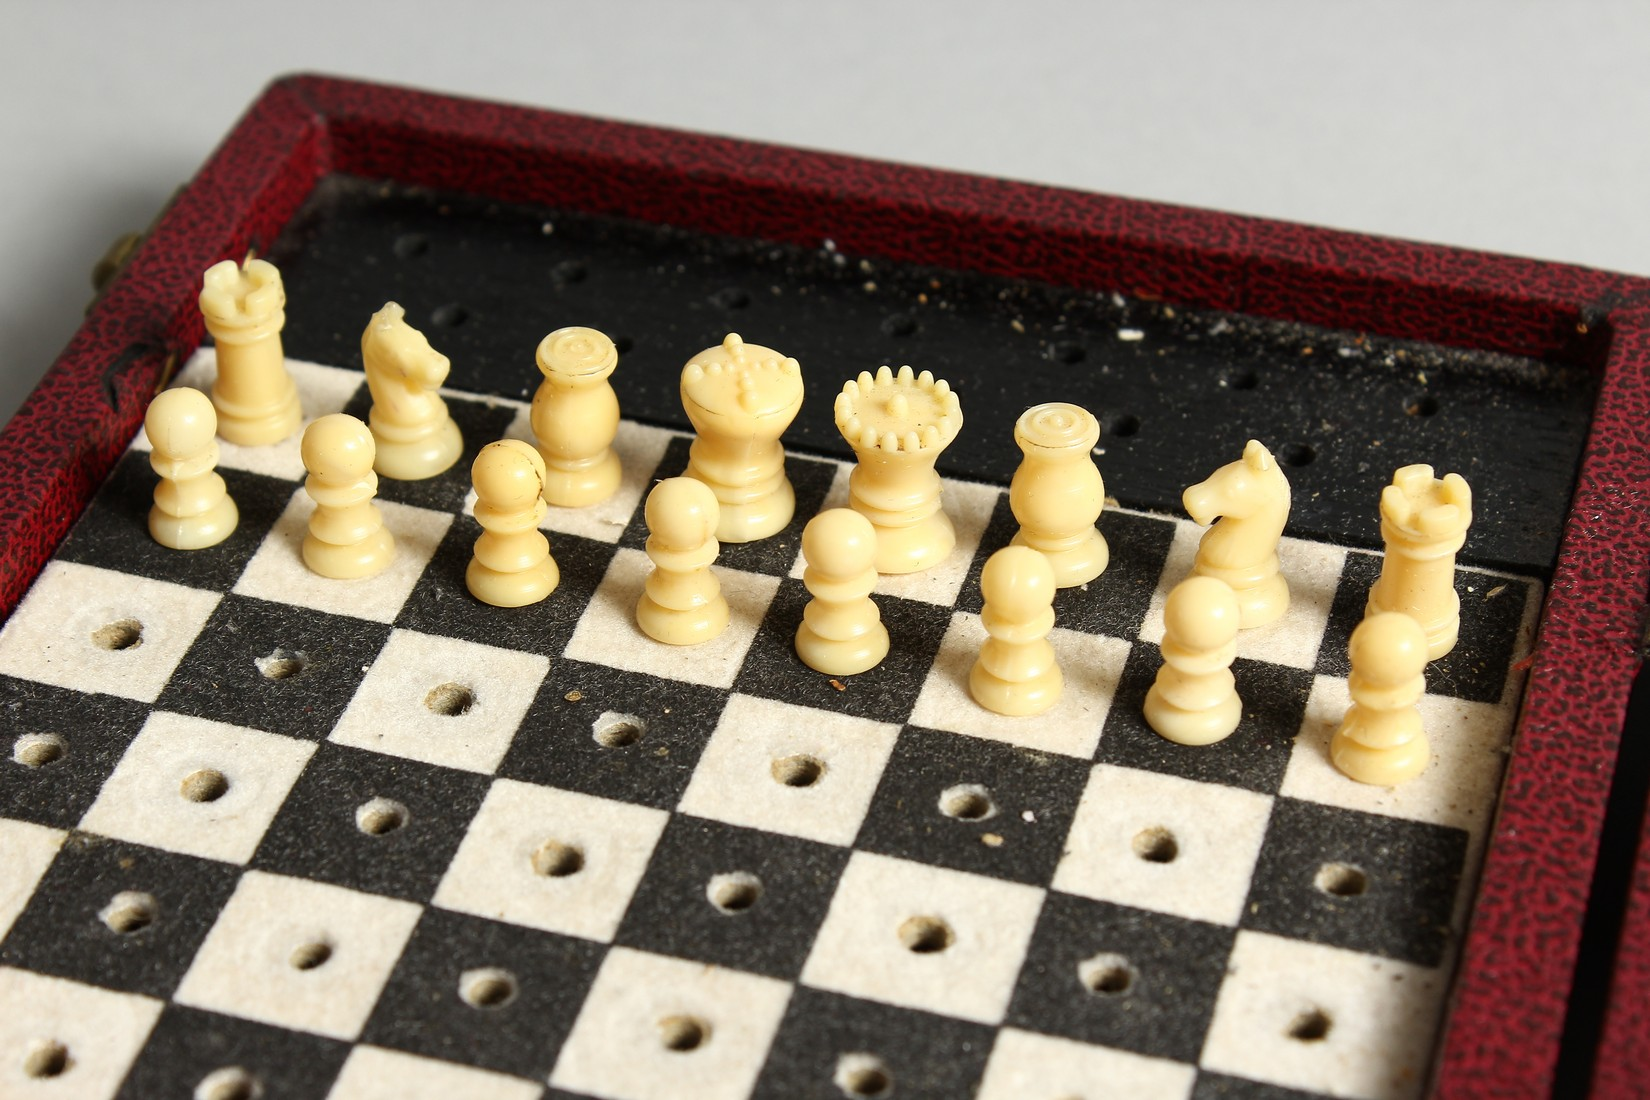 A TRAVELLING CHESS SET - Image 3 of 6